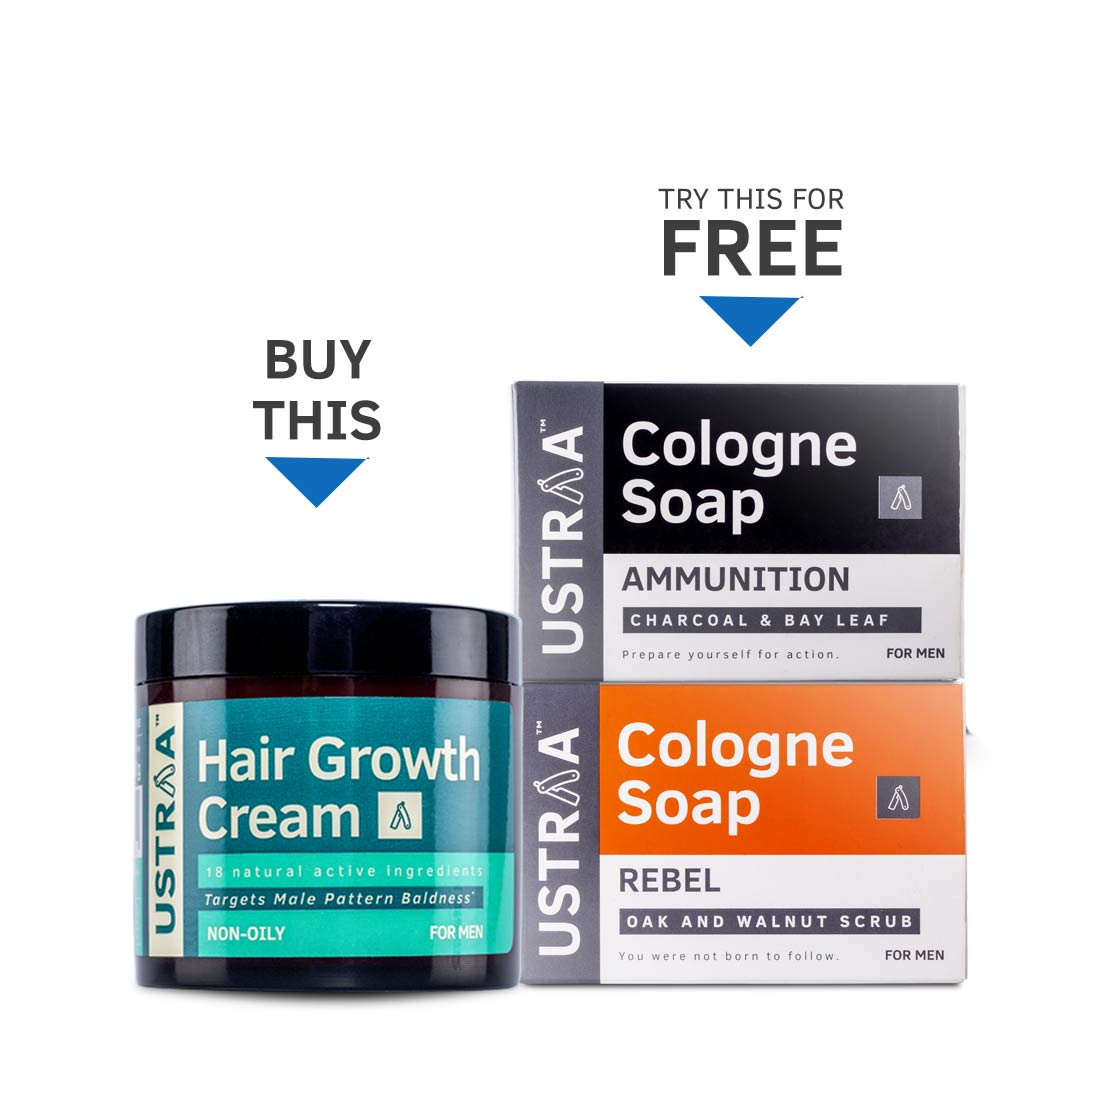 Hair Growth Cream (Get 2 Ustraa Cologne Soaps Free)